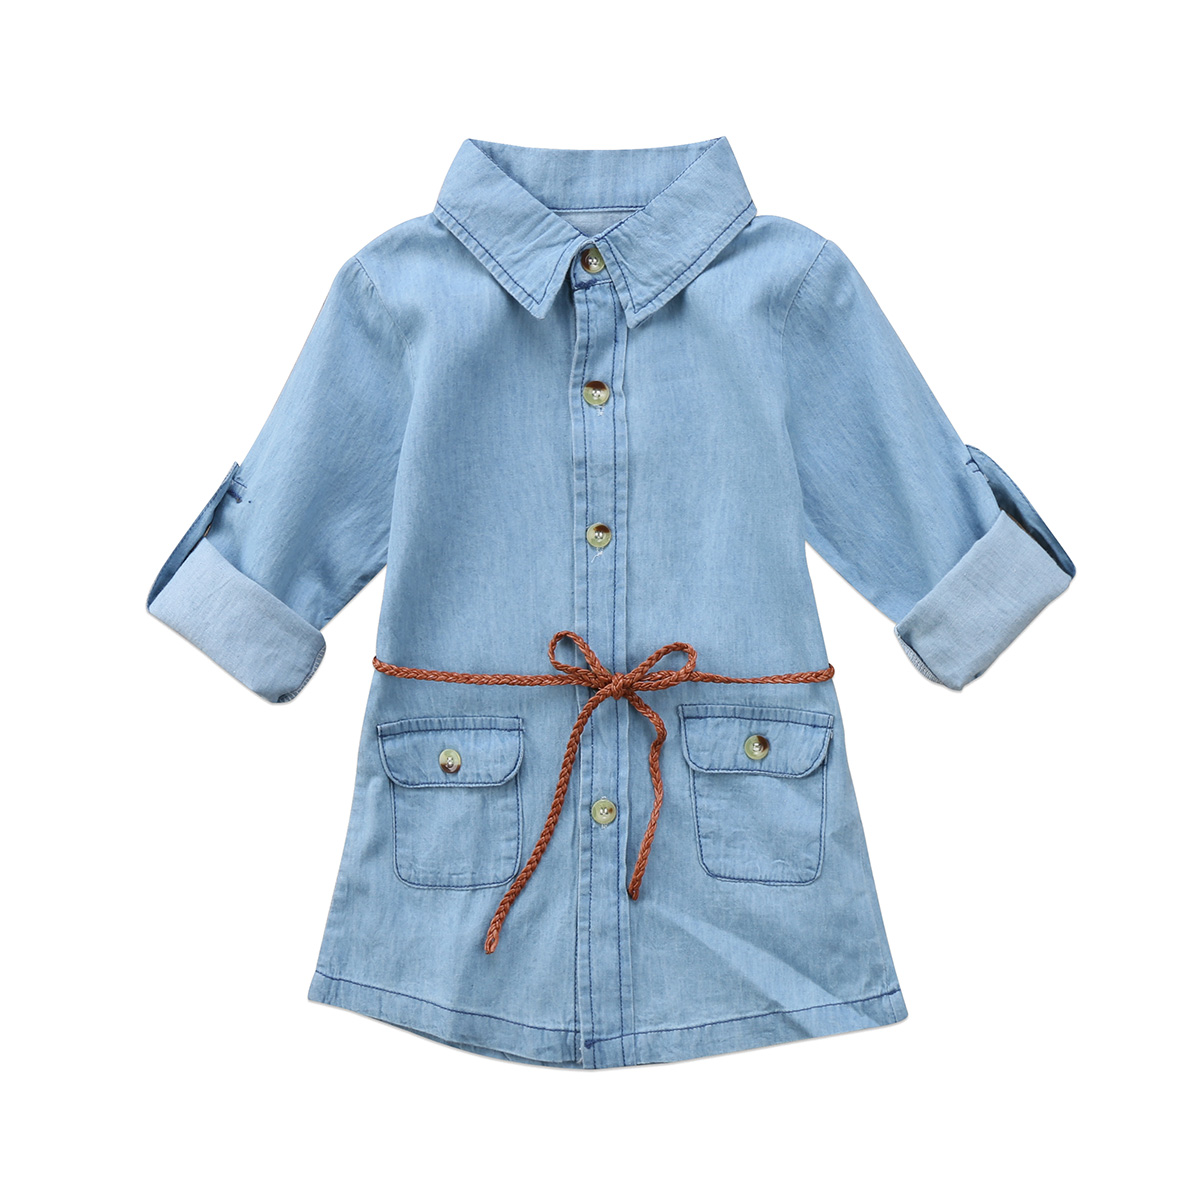 Baby Kids Girl Clothing Denim Short Mini Dresses Jean Long Sleeve Belt Cute Casual Party Shirt Dress Girls new q7559 60001 q7559ax laserjet cm6030 cm6040 cp6015 512mb 167mhz 200pin ddr memory